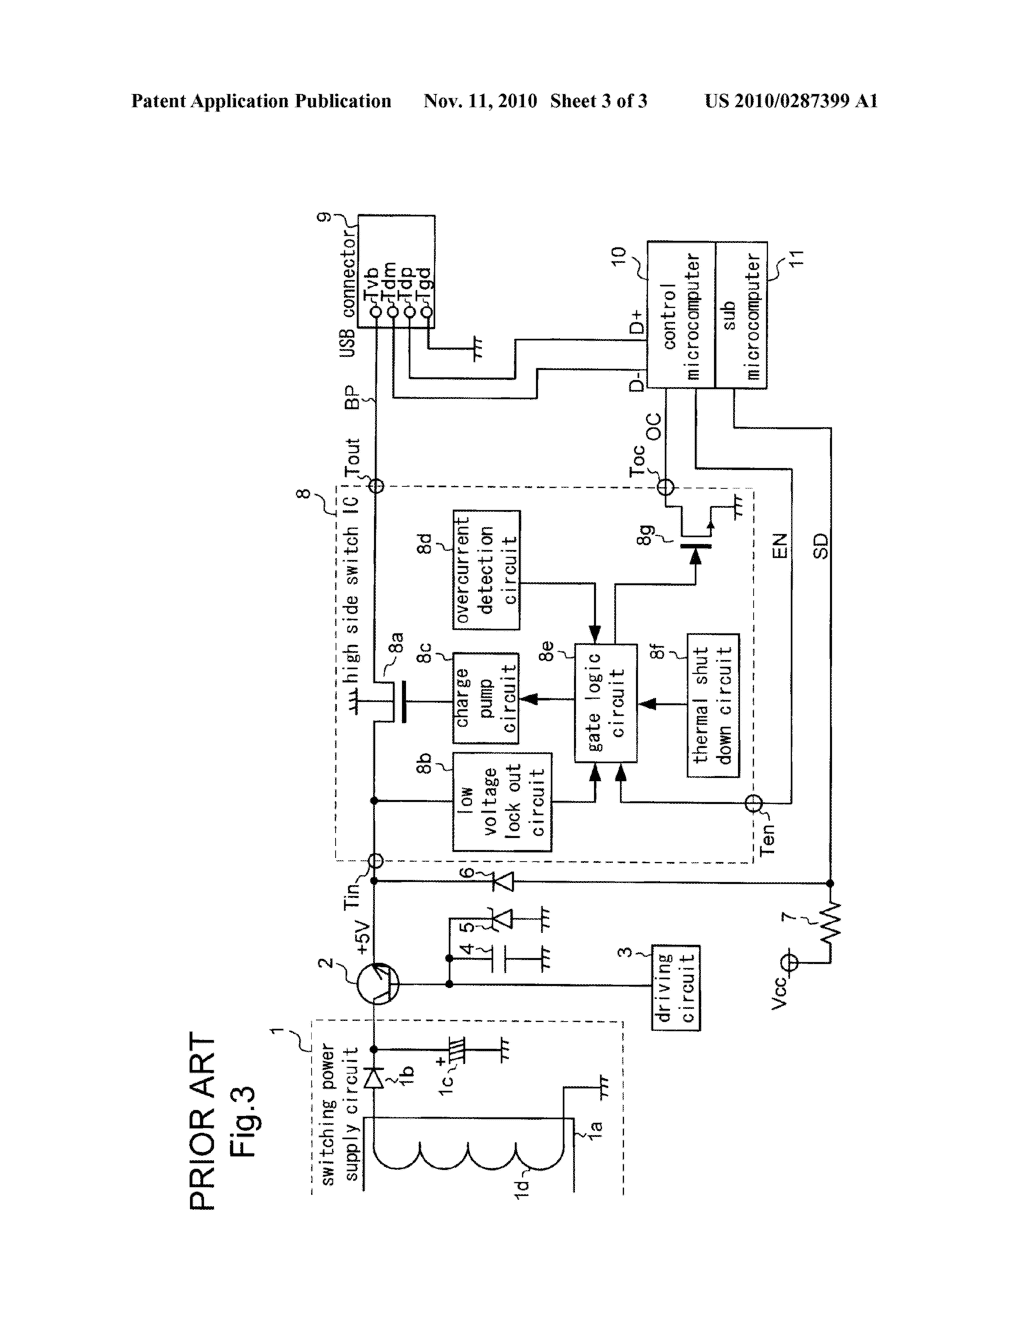 usb power supply circuit diagram schematic and image 04 rh patentsencyclopedia com usb power supply circuit diagram external usb power supply schematic